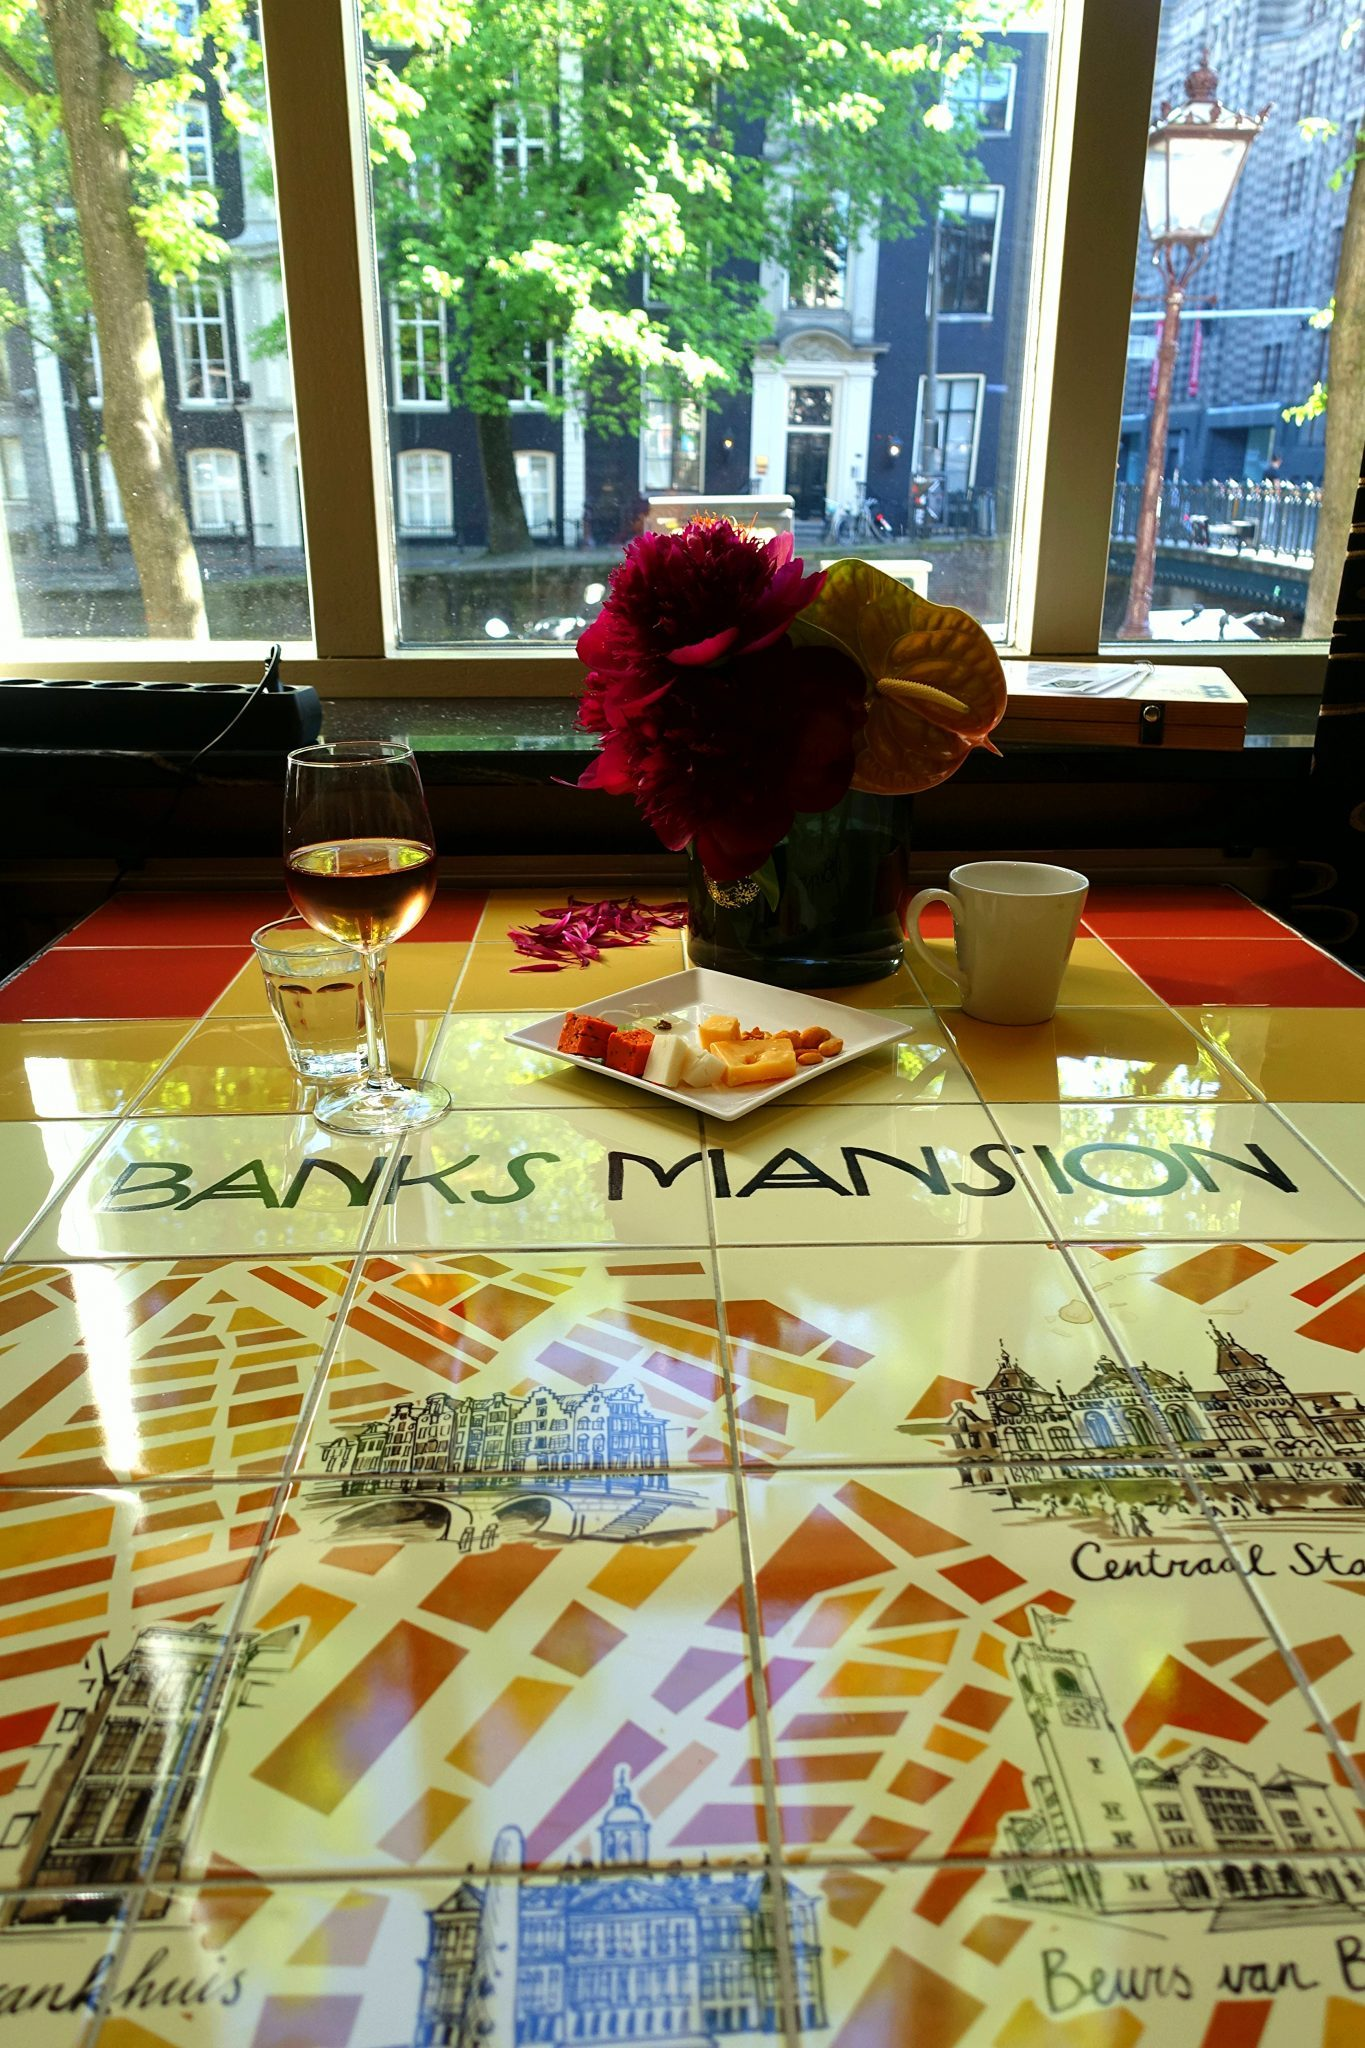 Where to stay in Amsterdam – Banks Mansion Hotel